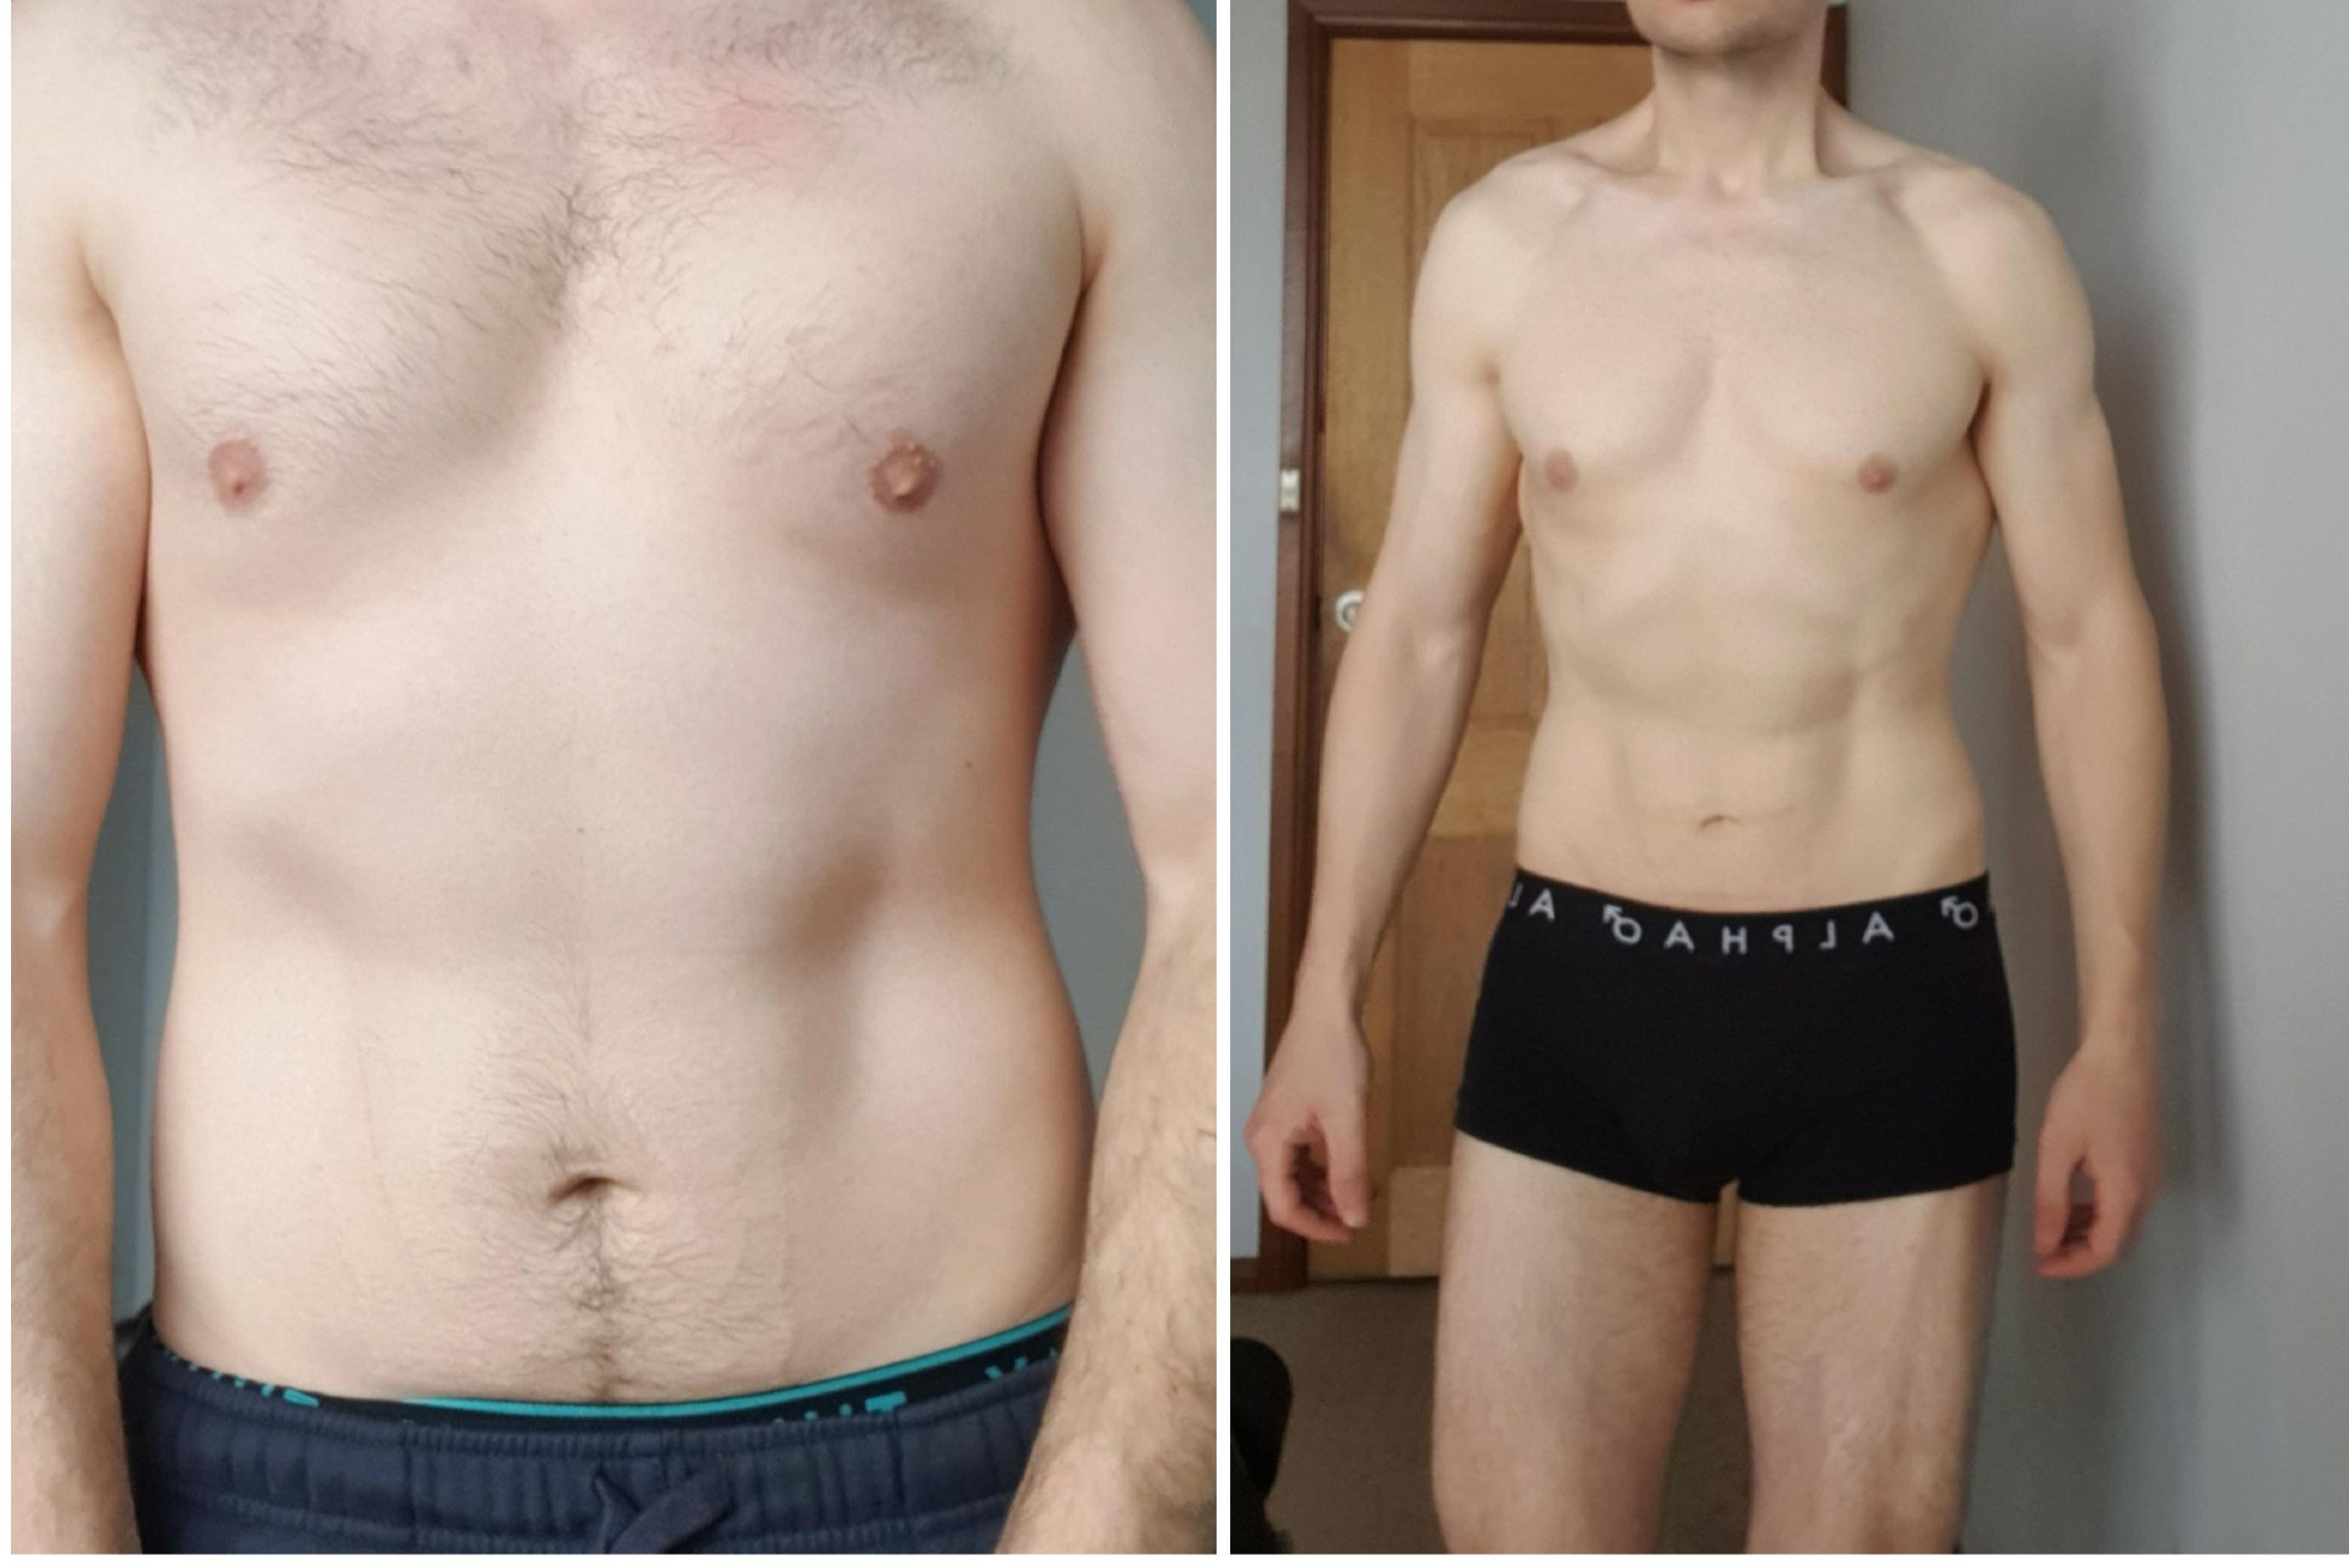 5'10 Male Before and After 15 lbs Weight Loss 165 lbs to 150 lbs